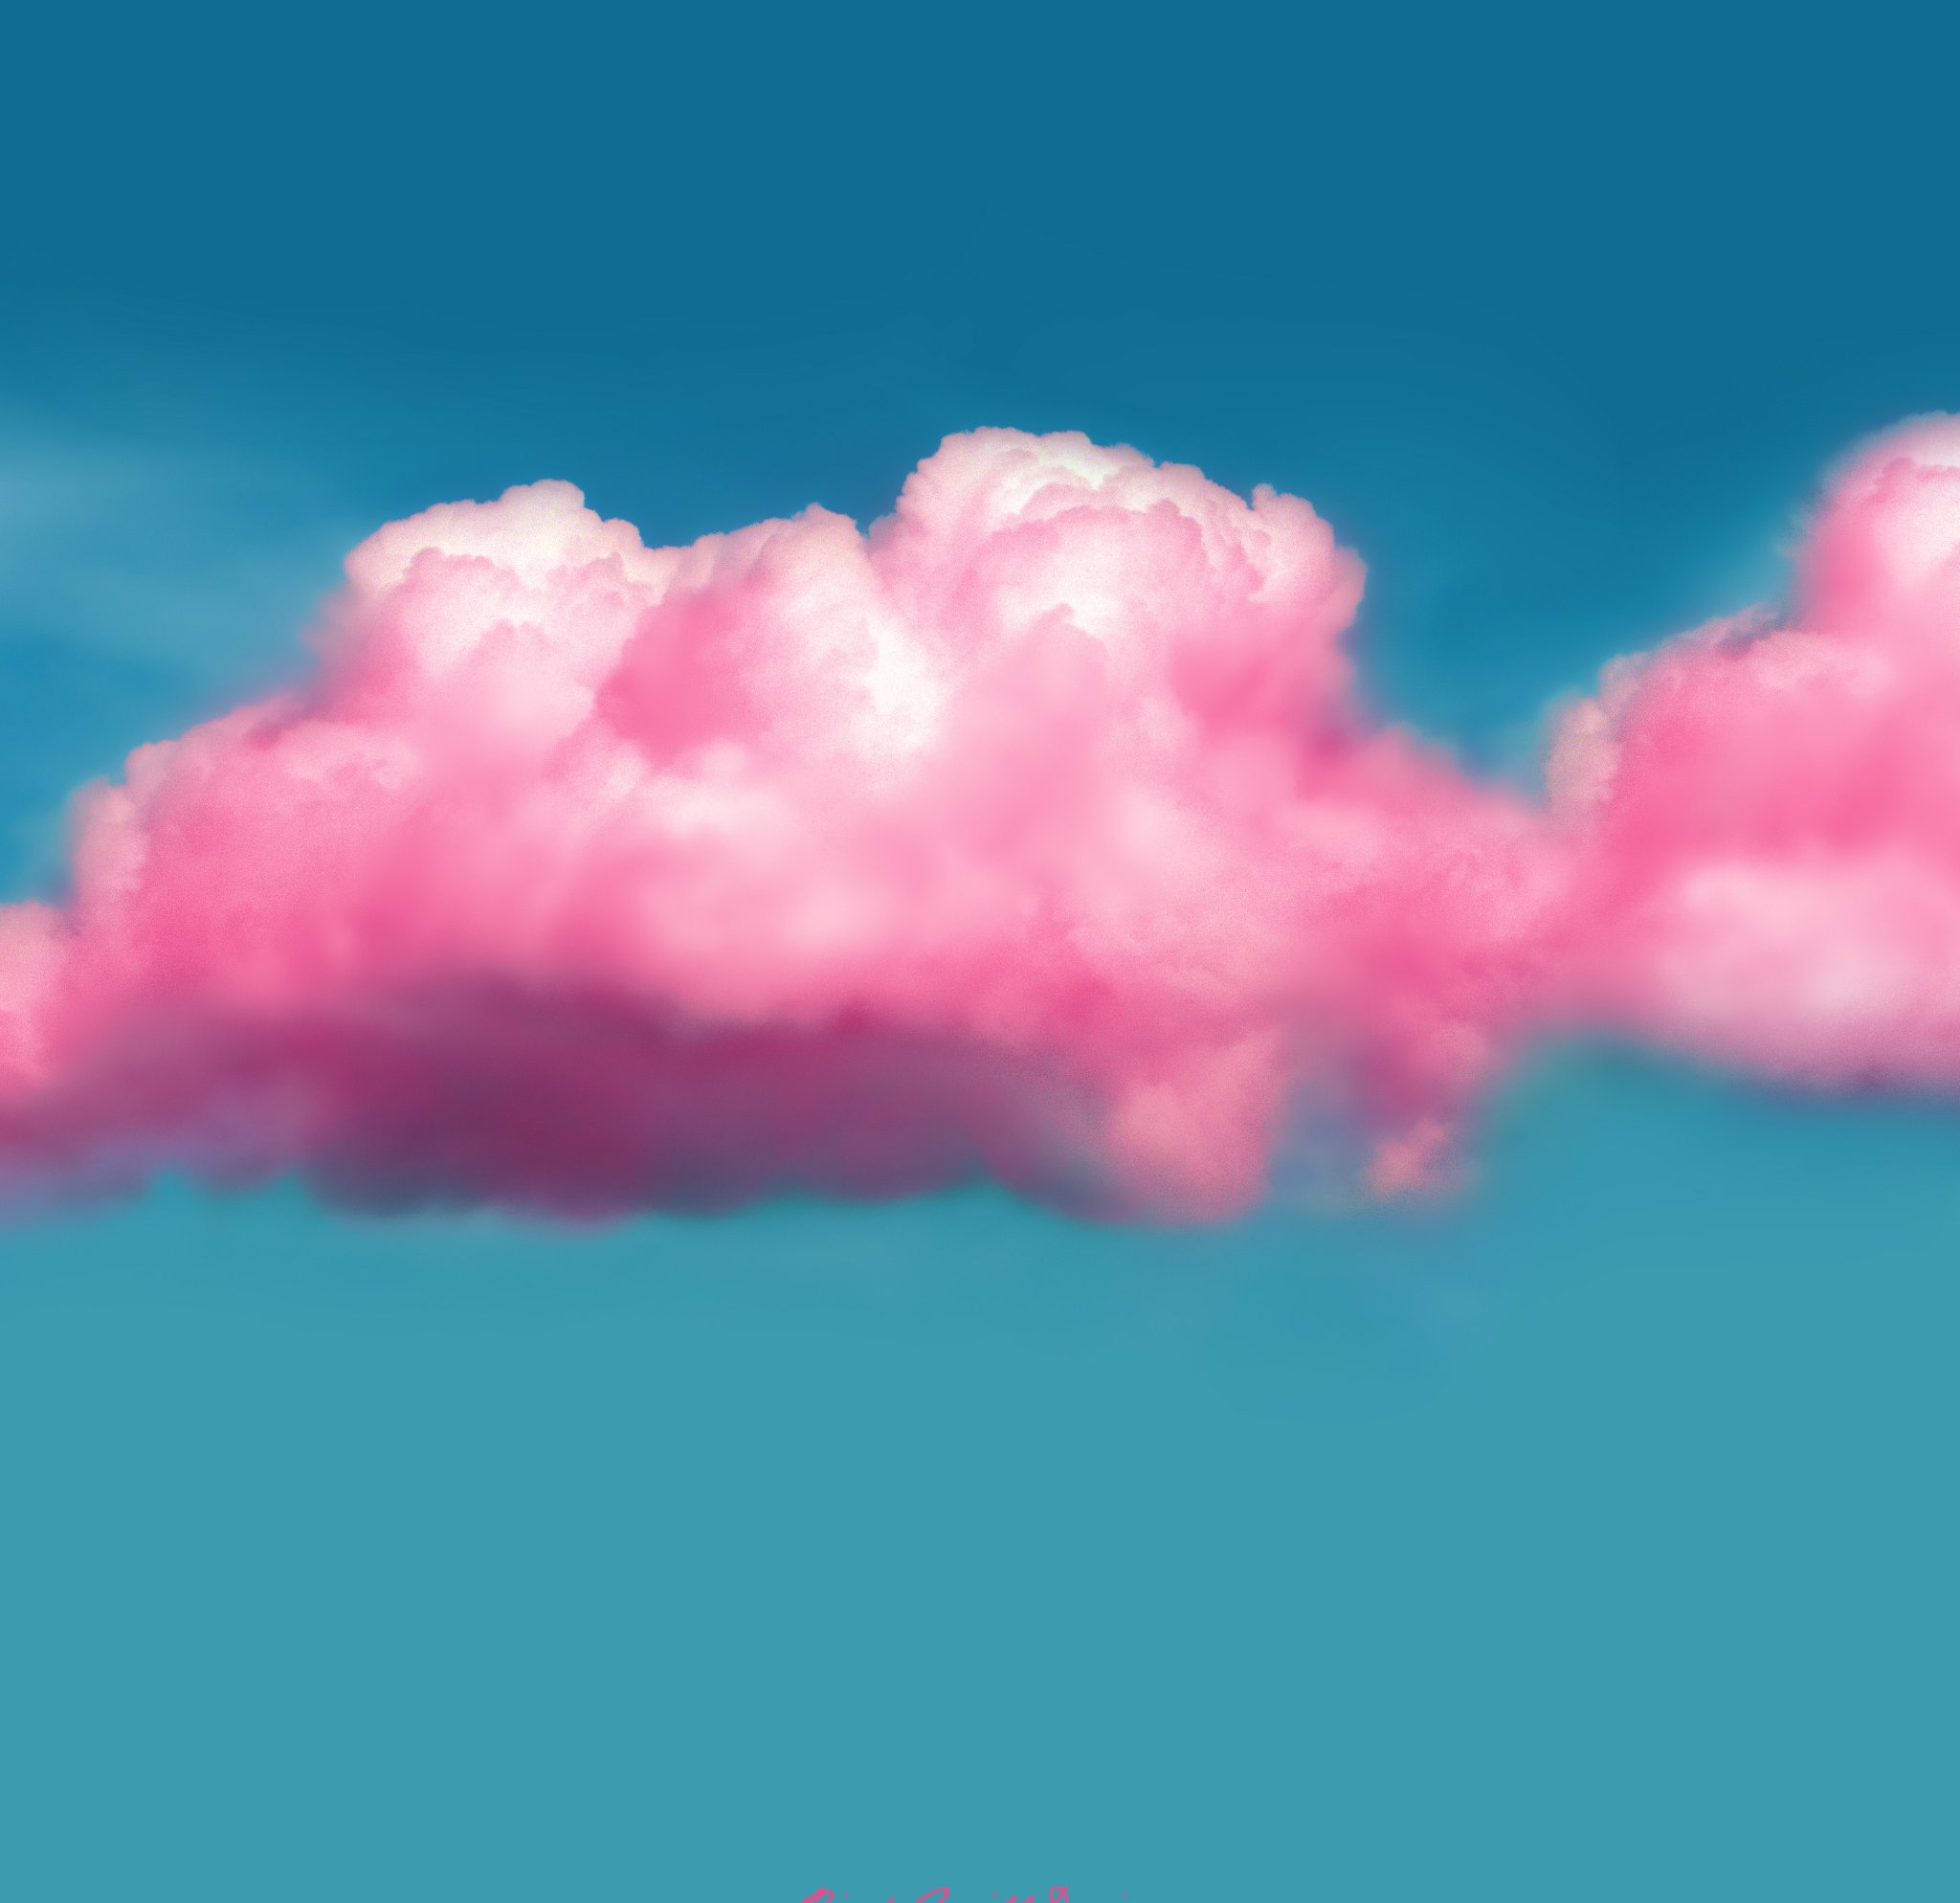 177 1777356 on the desktop wallpaper rainbow clouds daisies fluffy